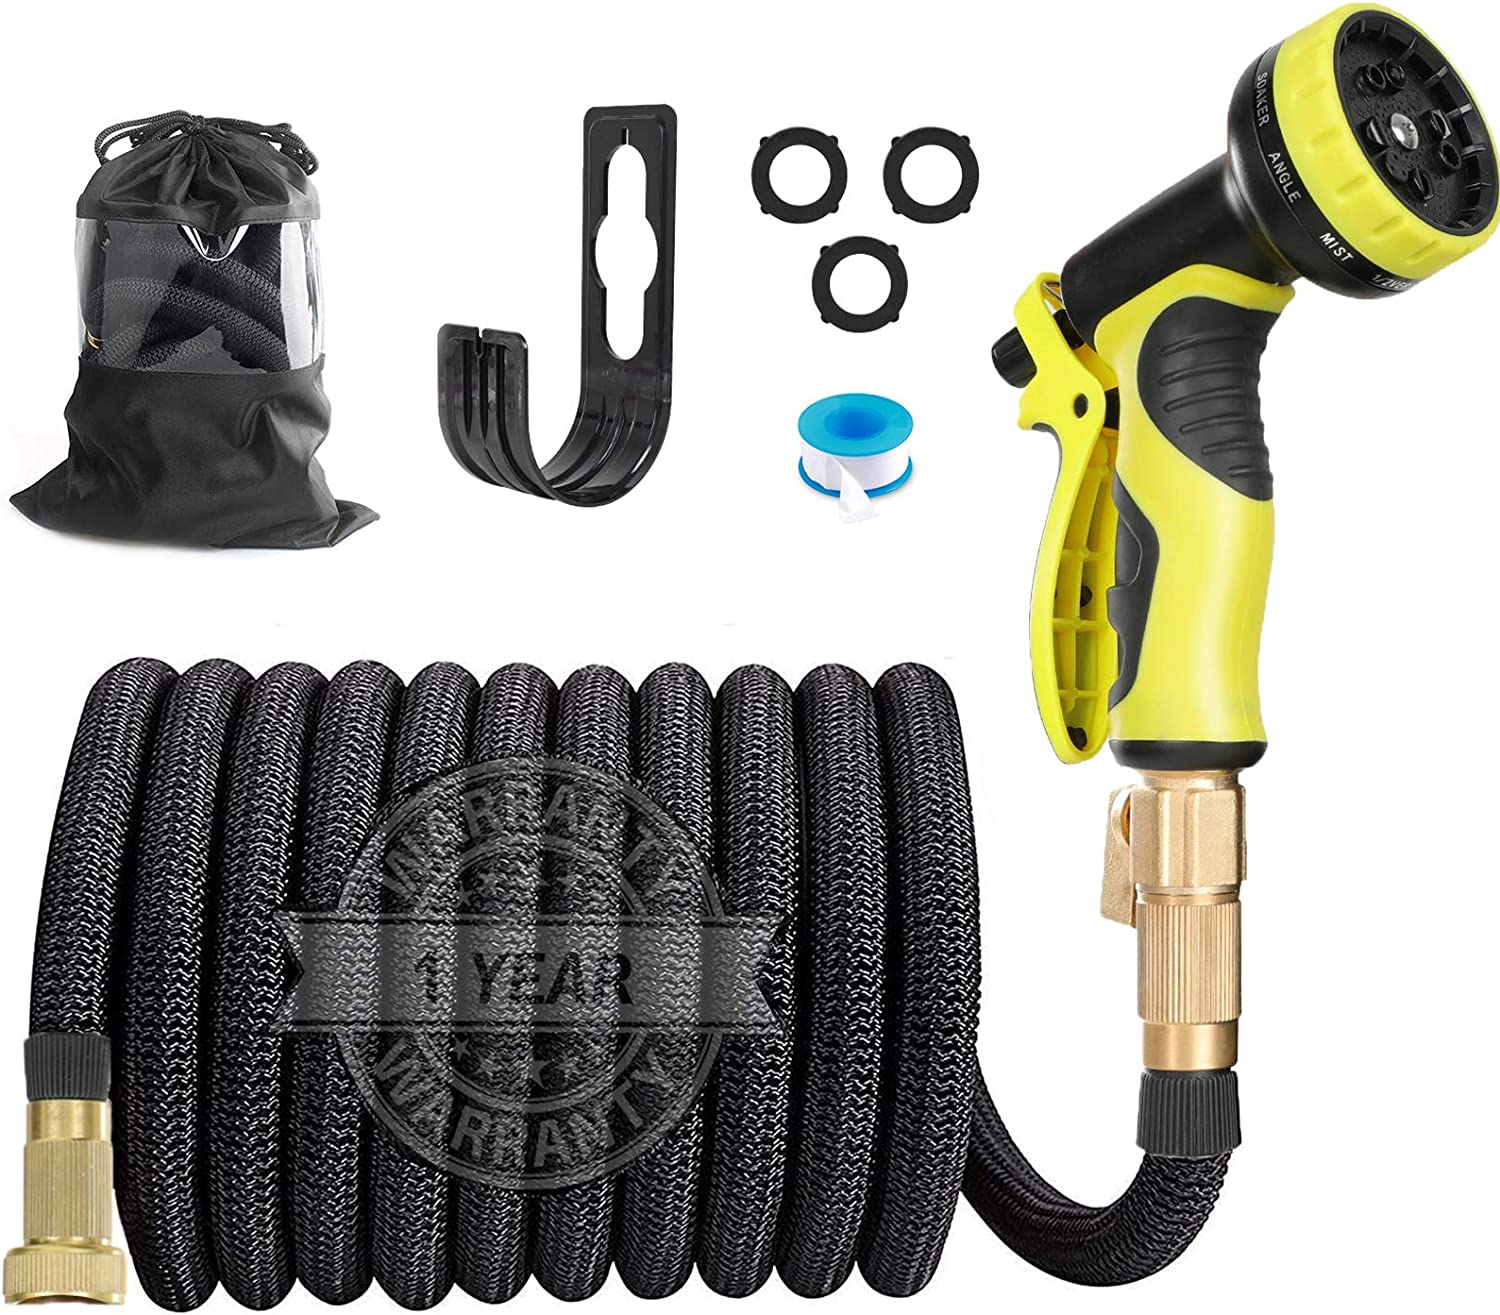 HAUEA Expandable Garden Hose 25FT Leakproof Lightweight Flexible Water Hose with 10 Function Nozzle and 3/4